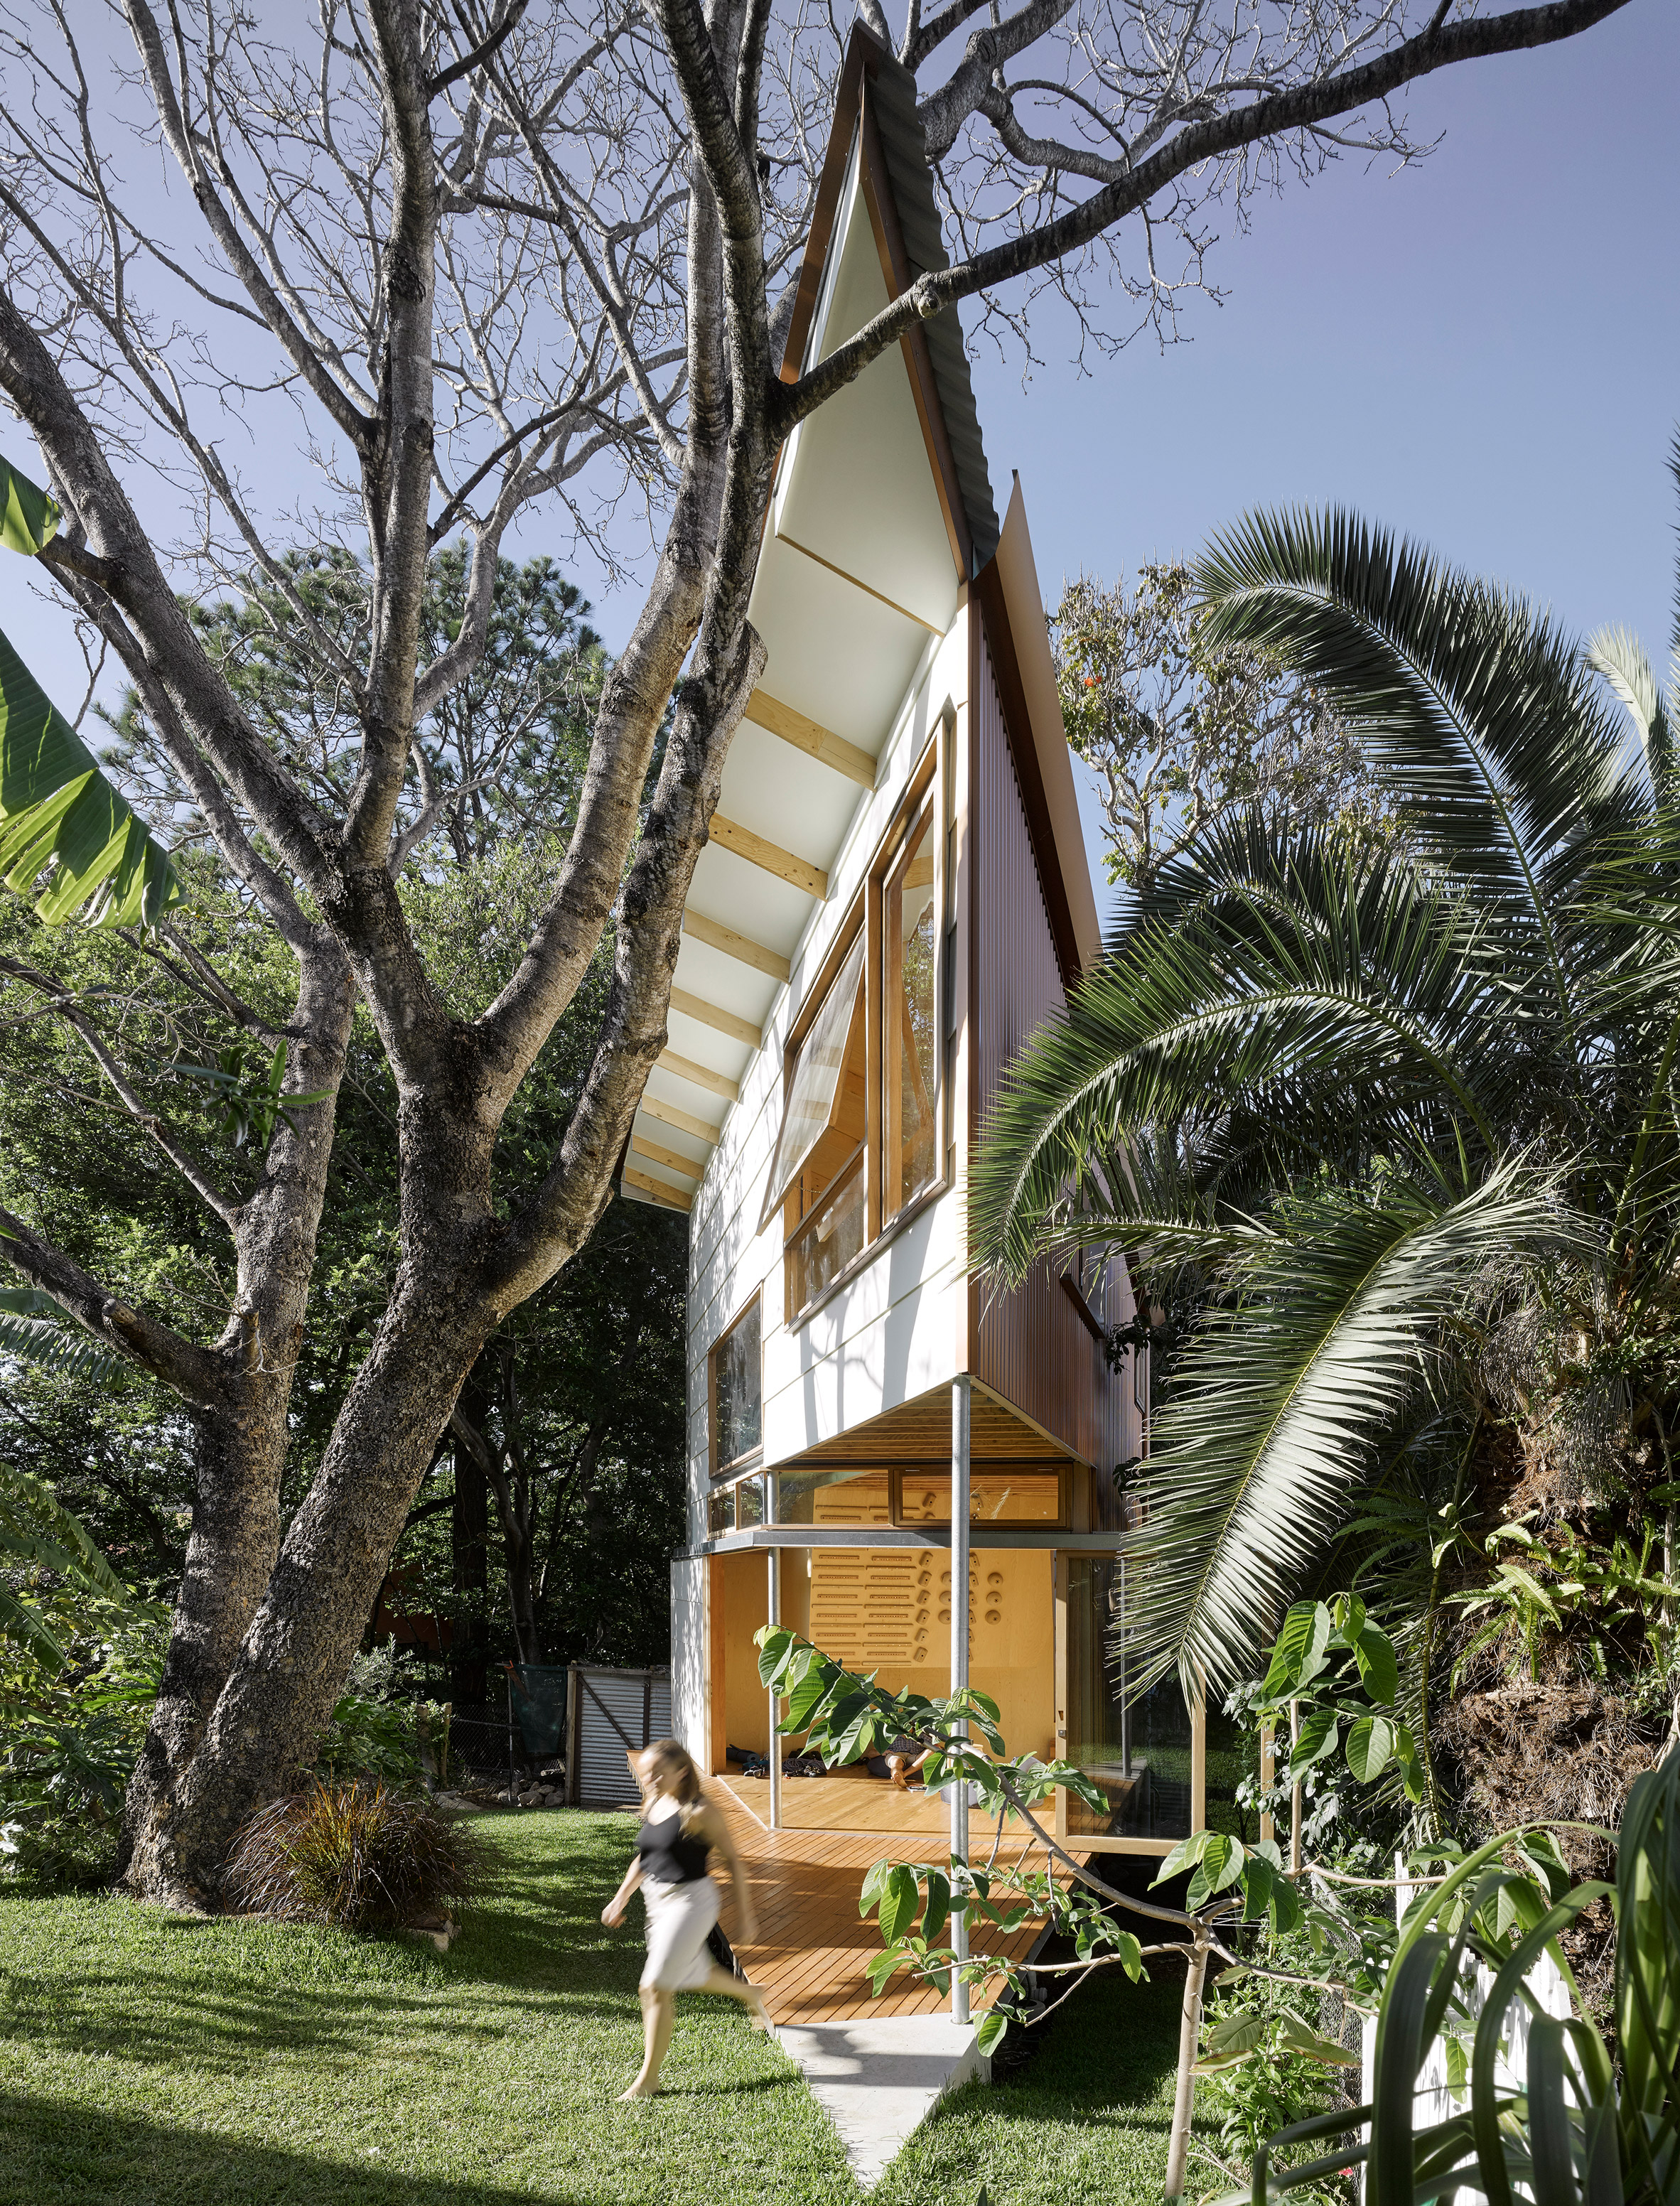 Extremely Pointed Garden Room Features A Treehouse Like Design And